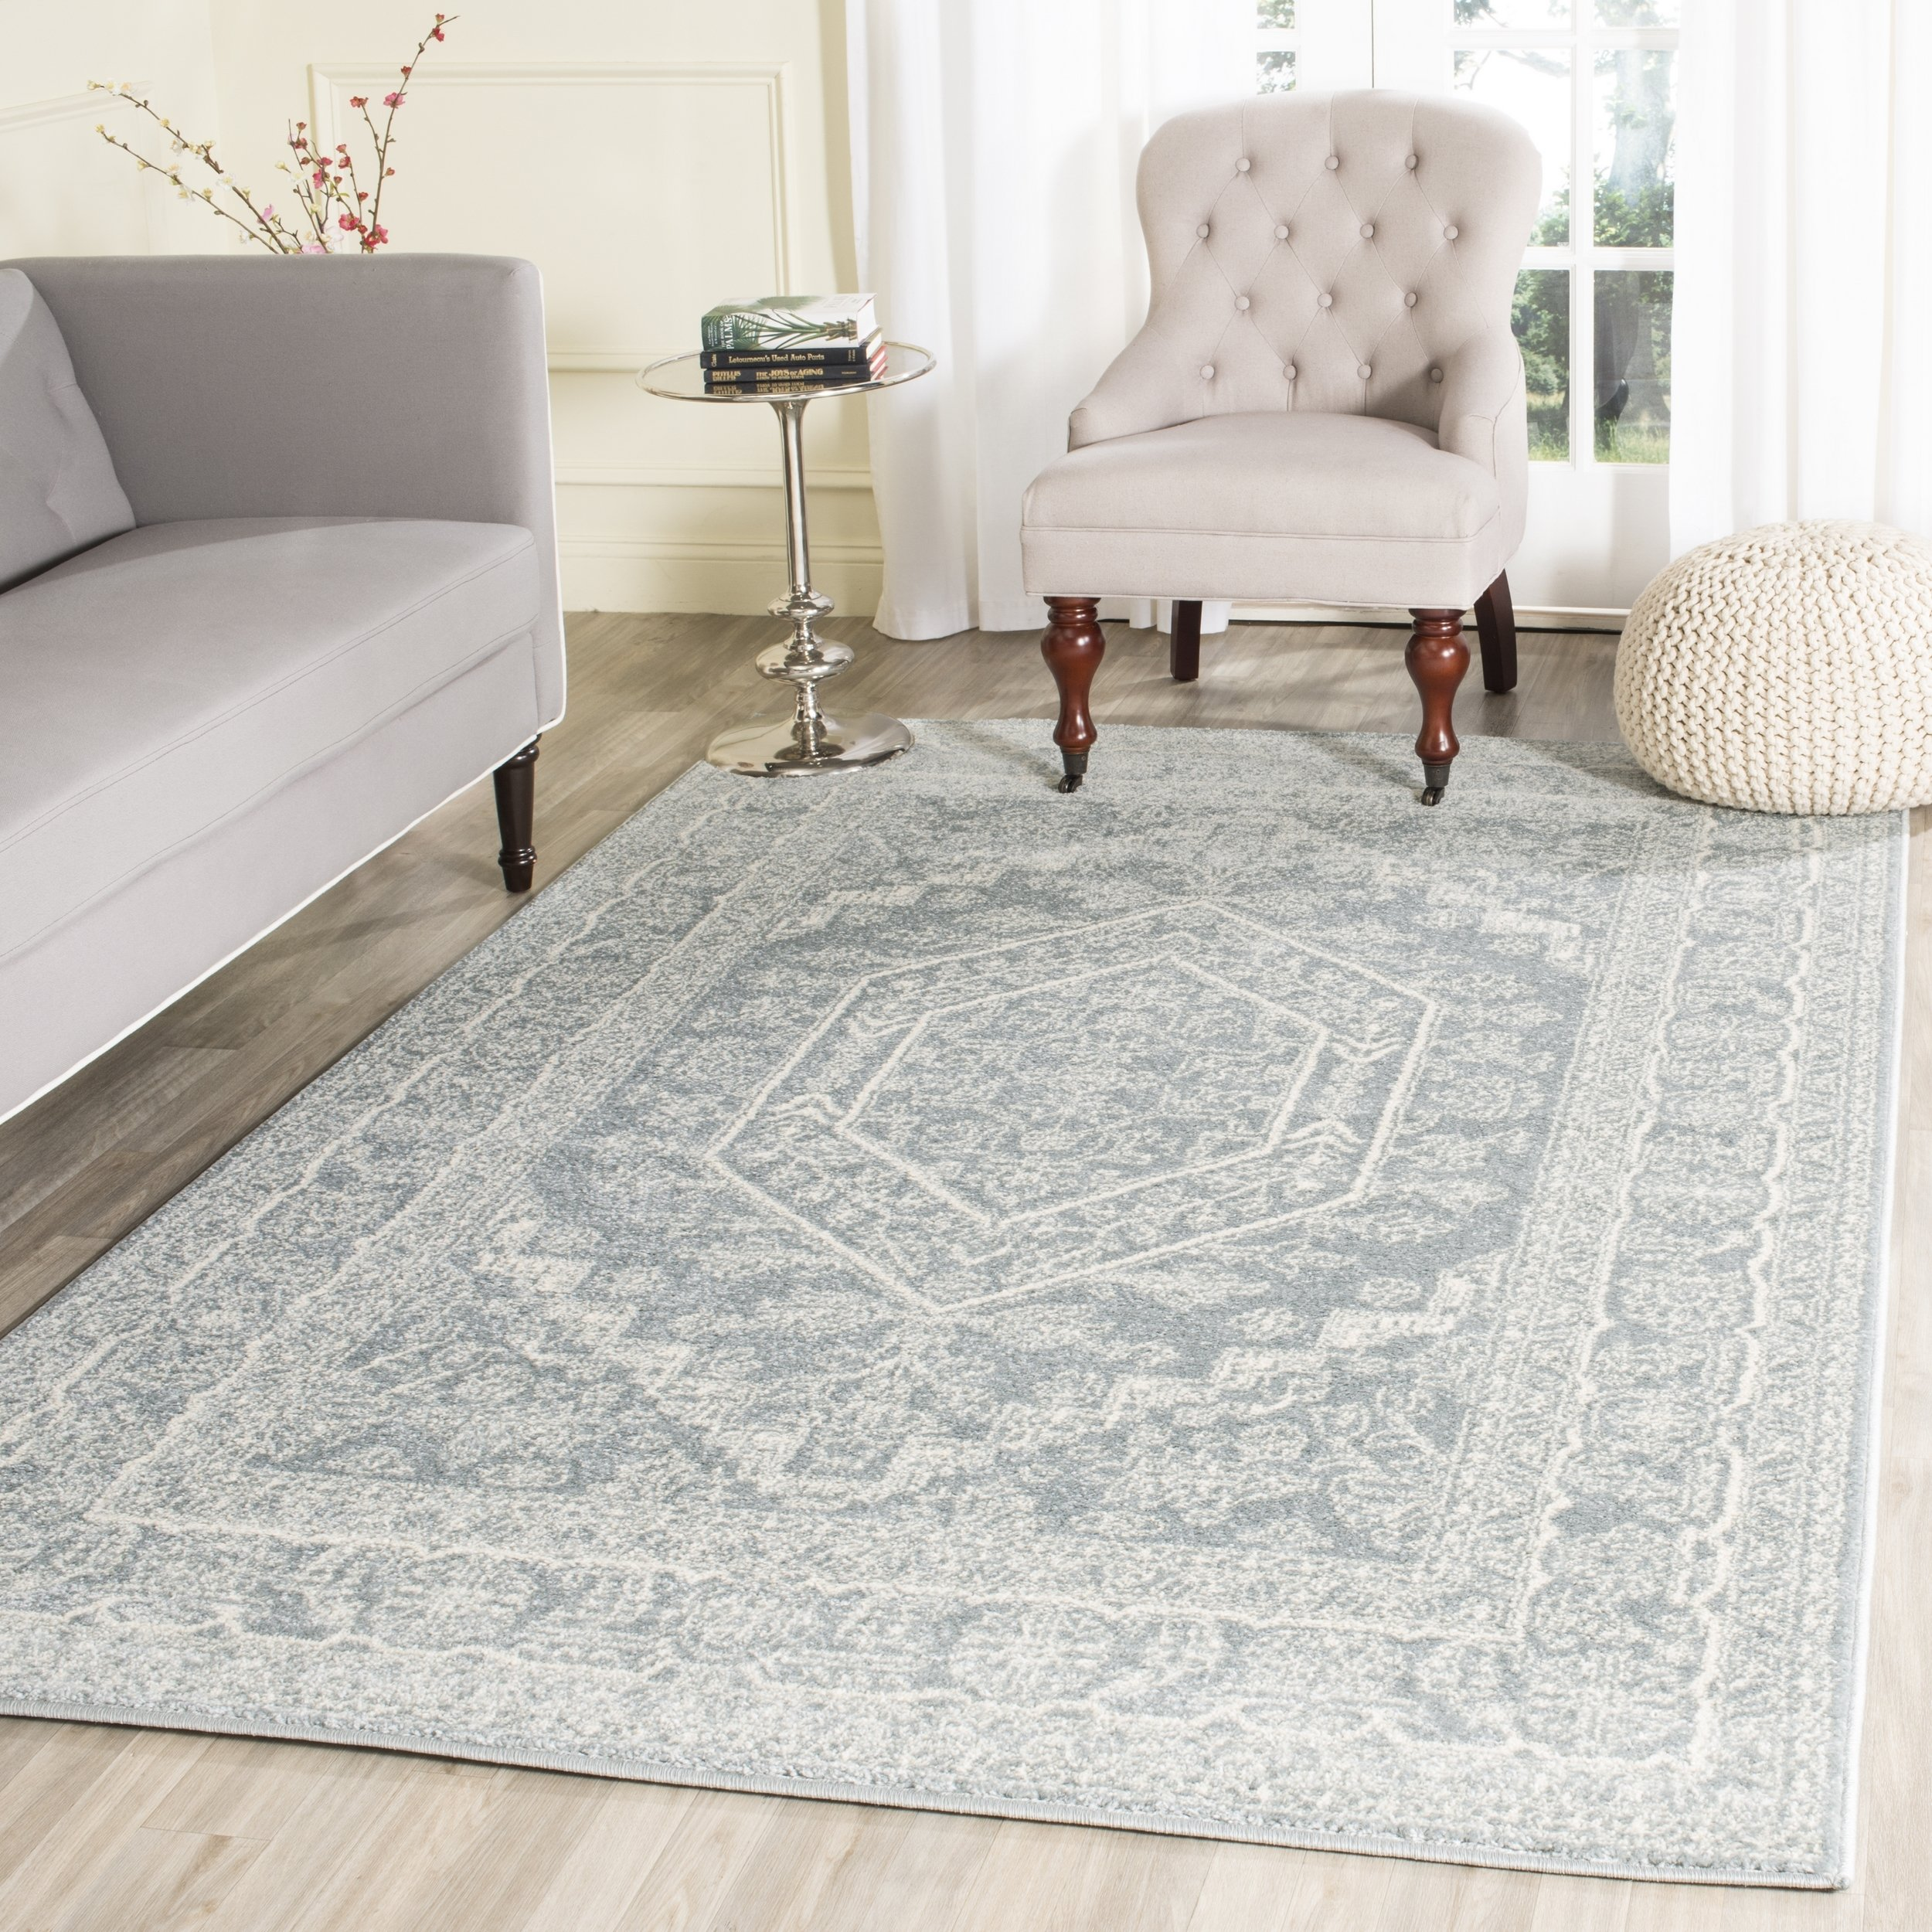 Safavieh Adirondack Collection ADR108T Slate and Ivory Oriental Vintage Medallion Area Rug (8' x 10') by Safavieh